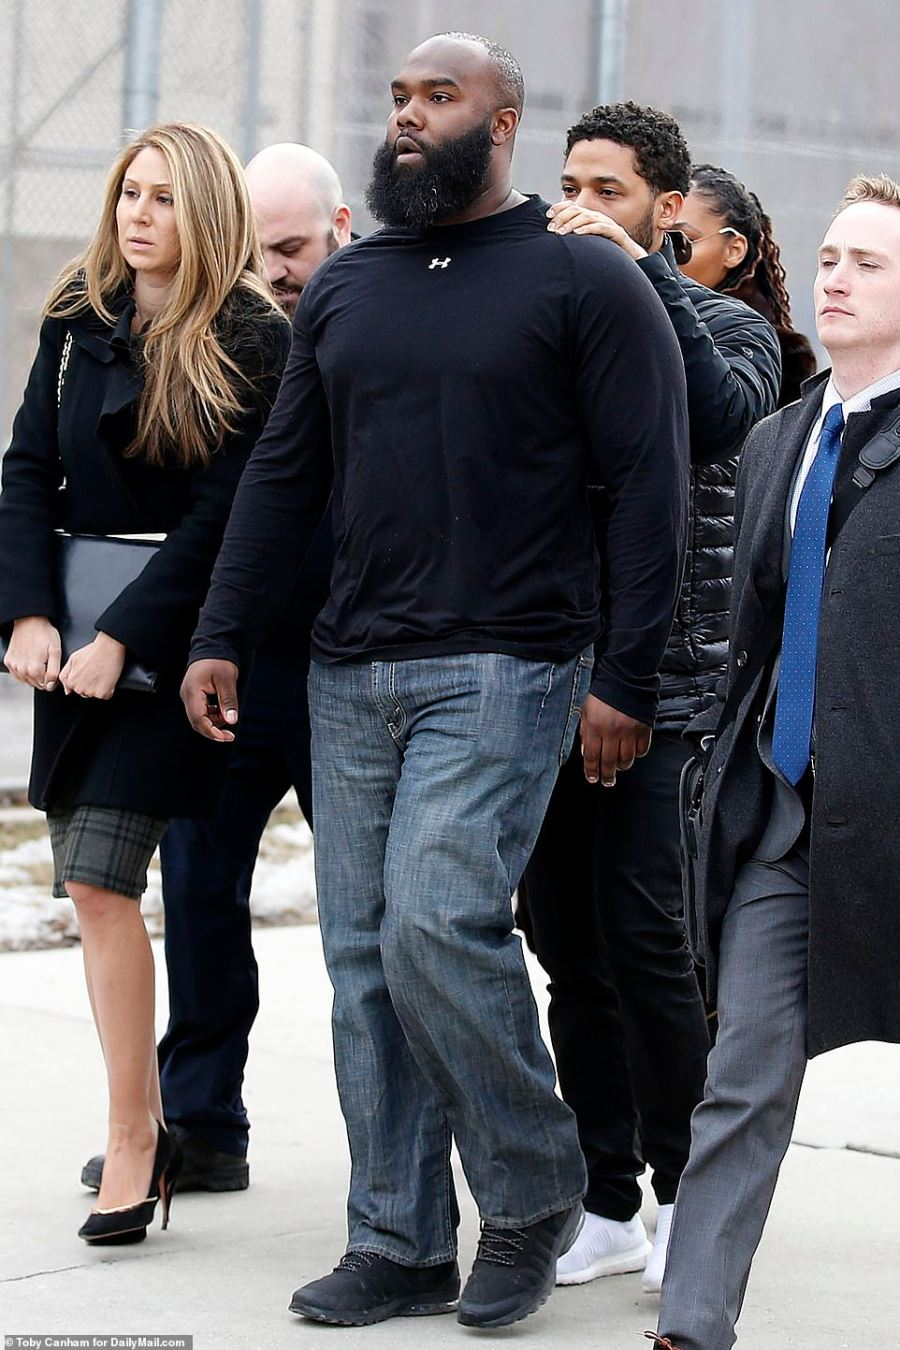 Even before he reached the scrum of photographers, Smollett placed his hands on his security guard's shoulders